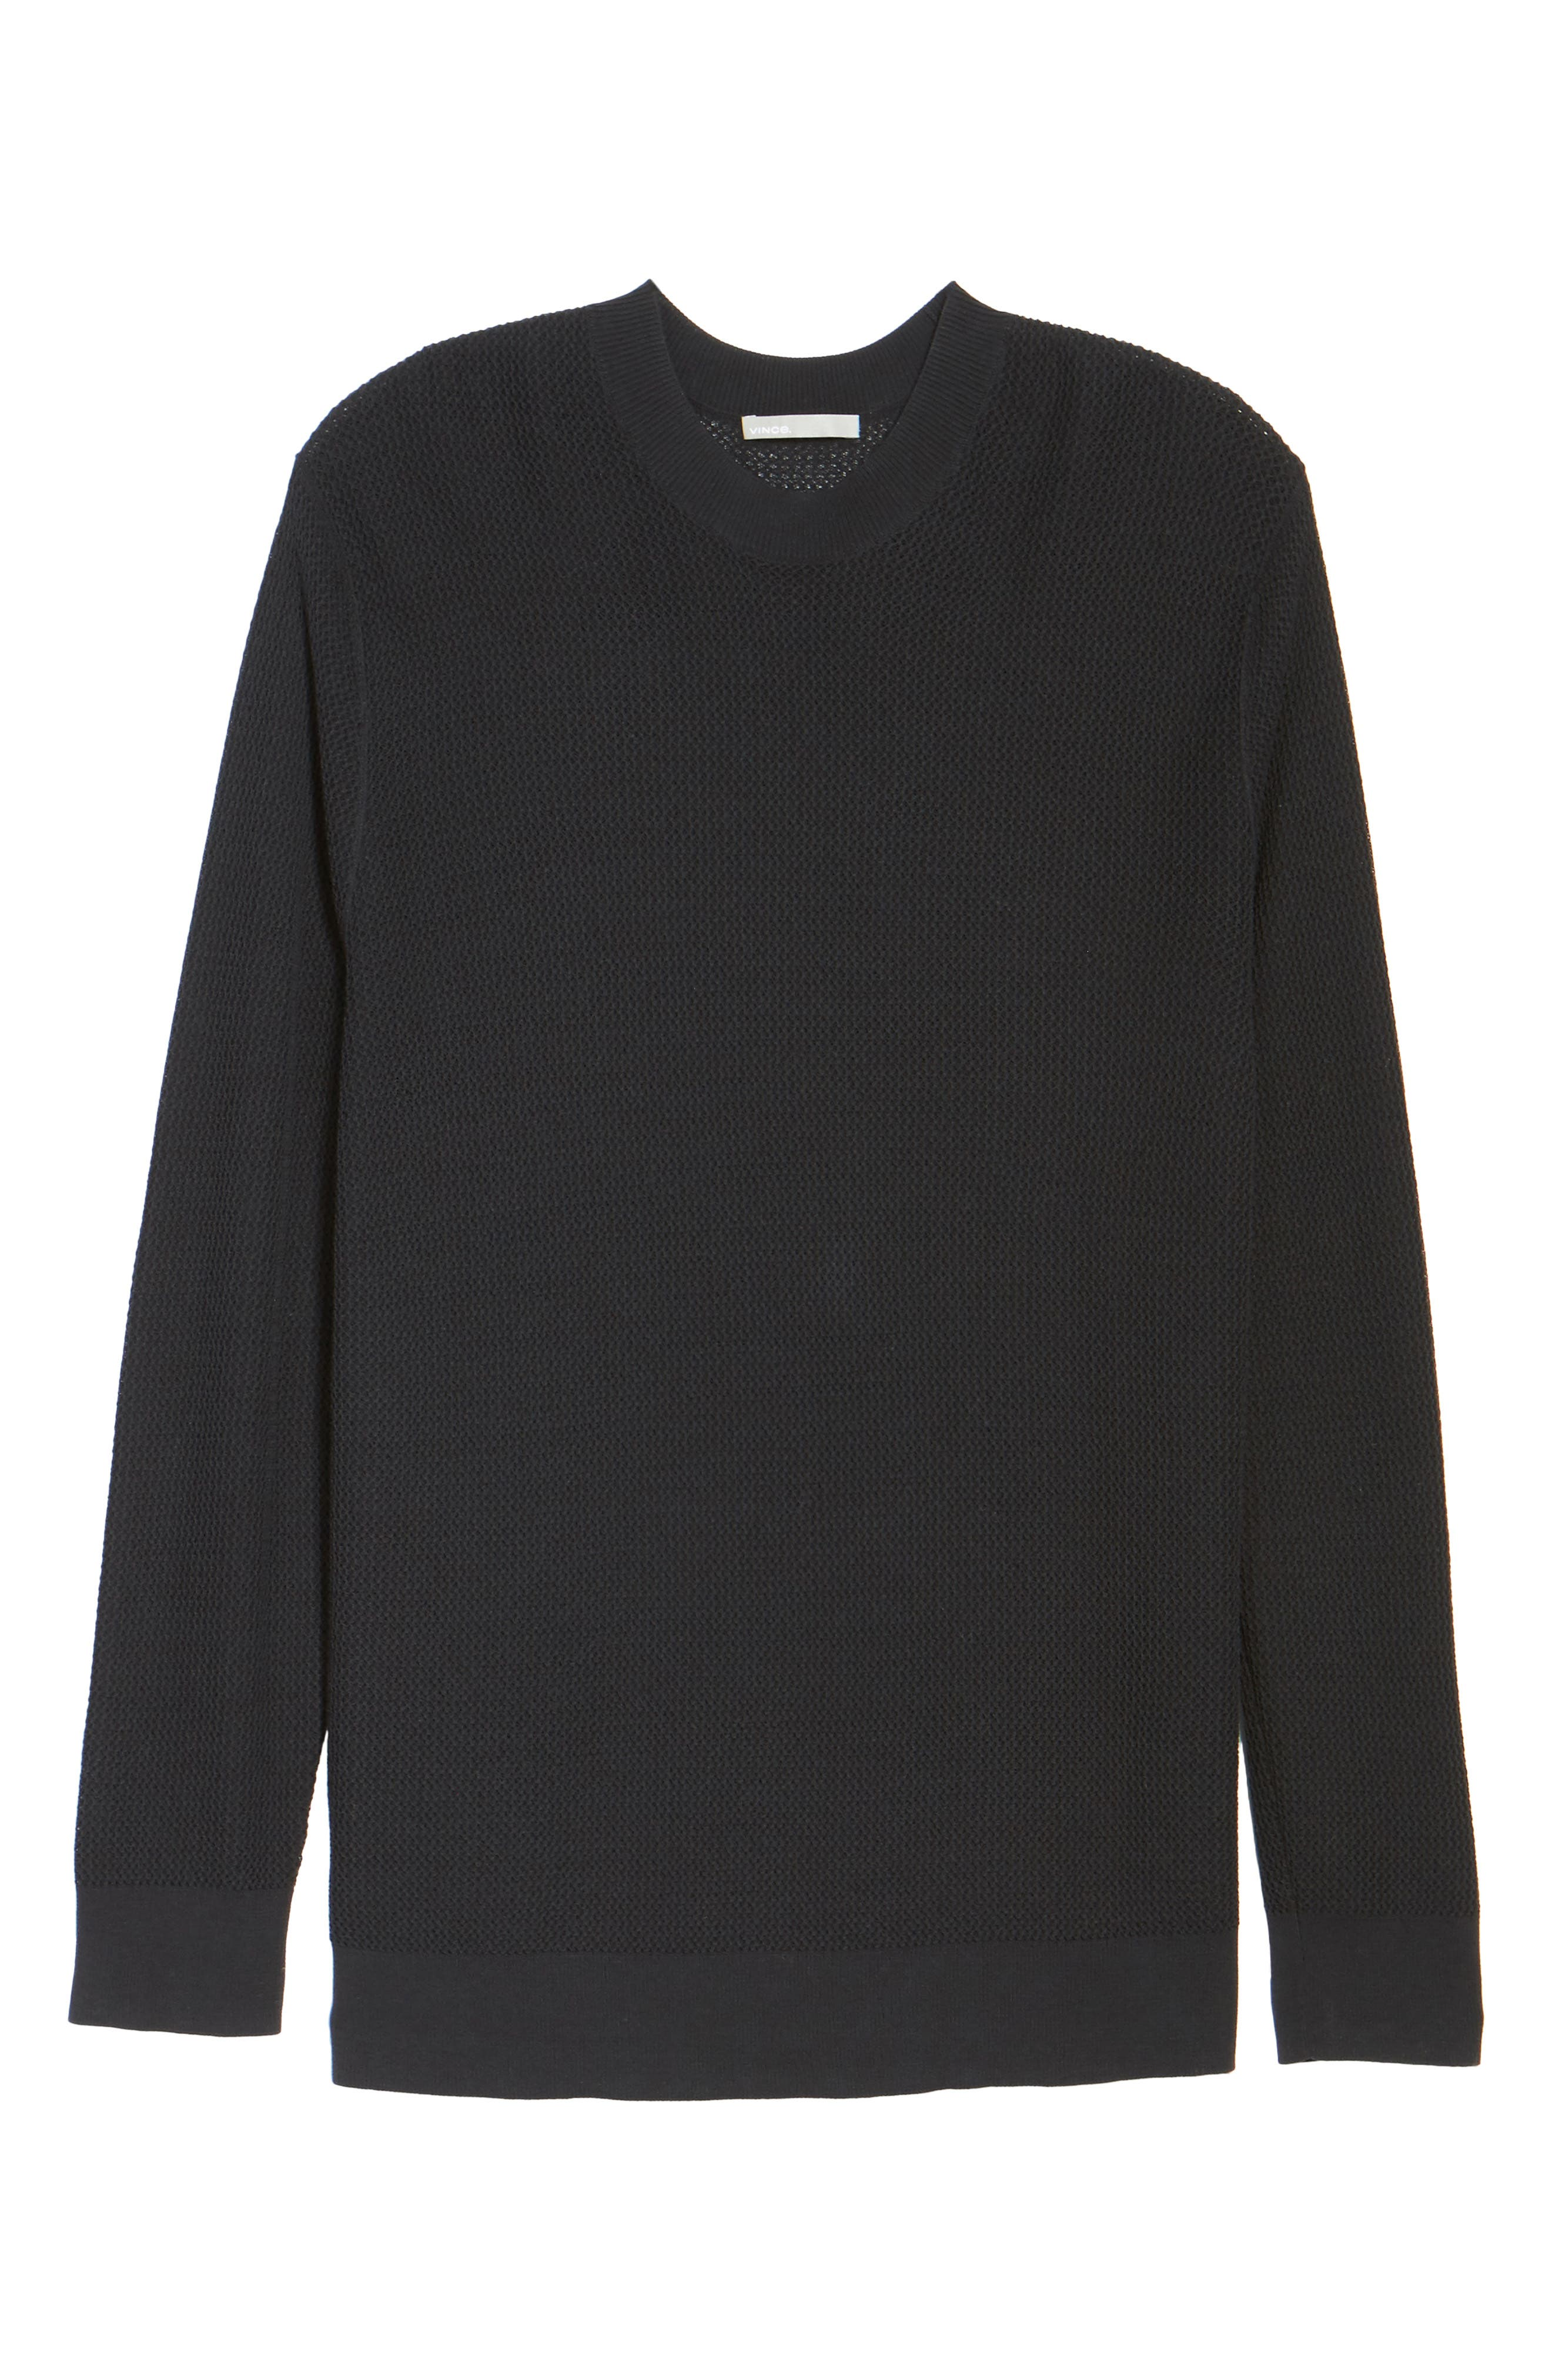 Mesh Crewneck Sweater,                             Alternate thumbnail 6, color,                             001